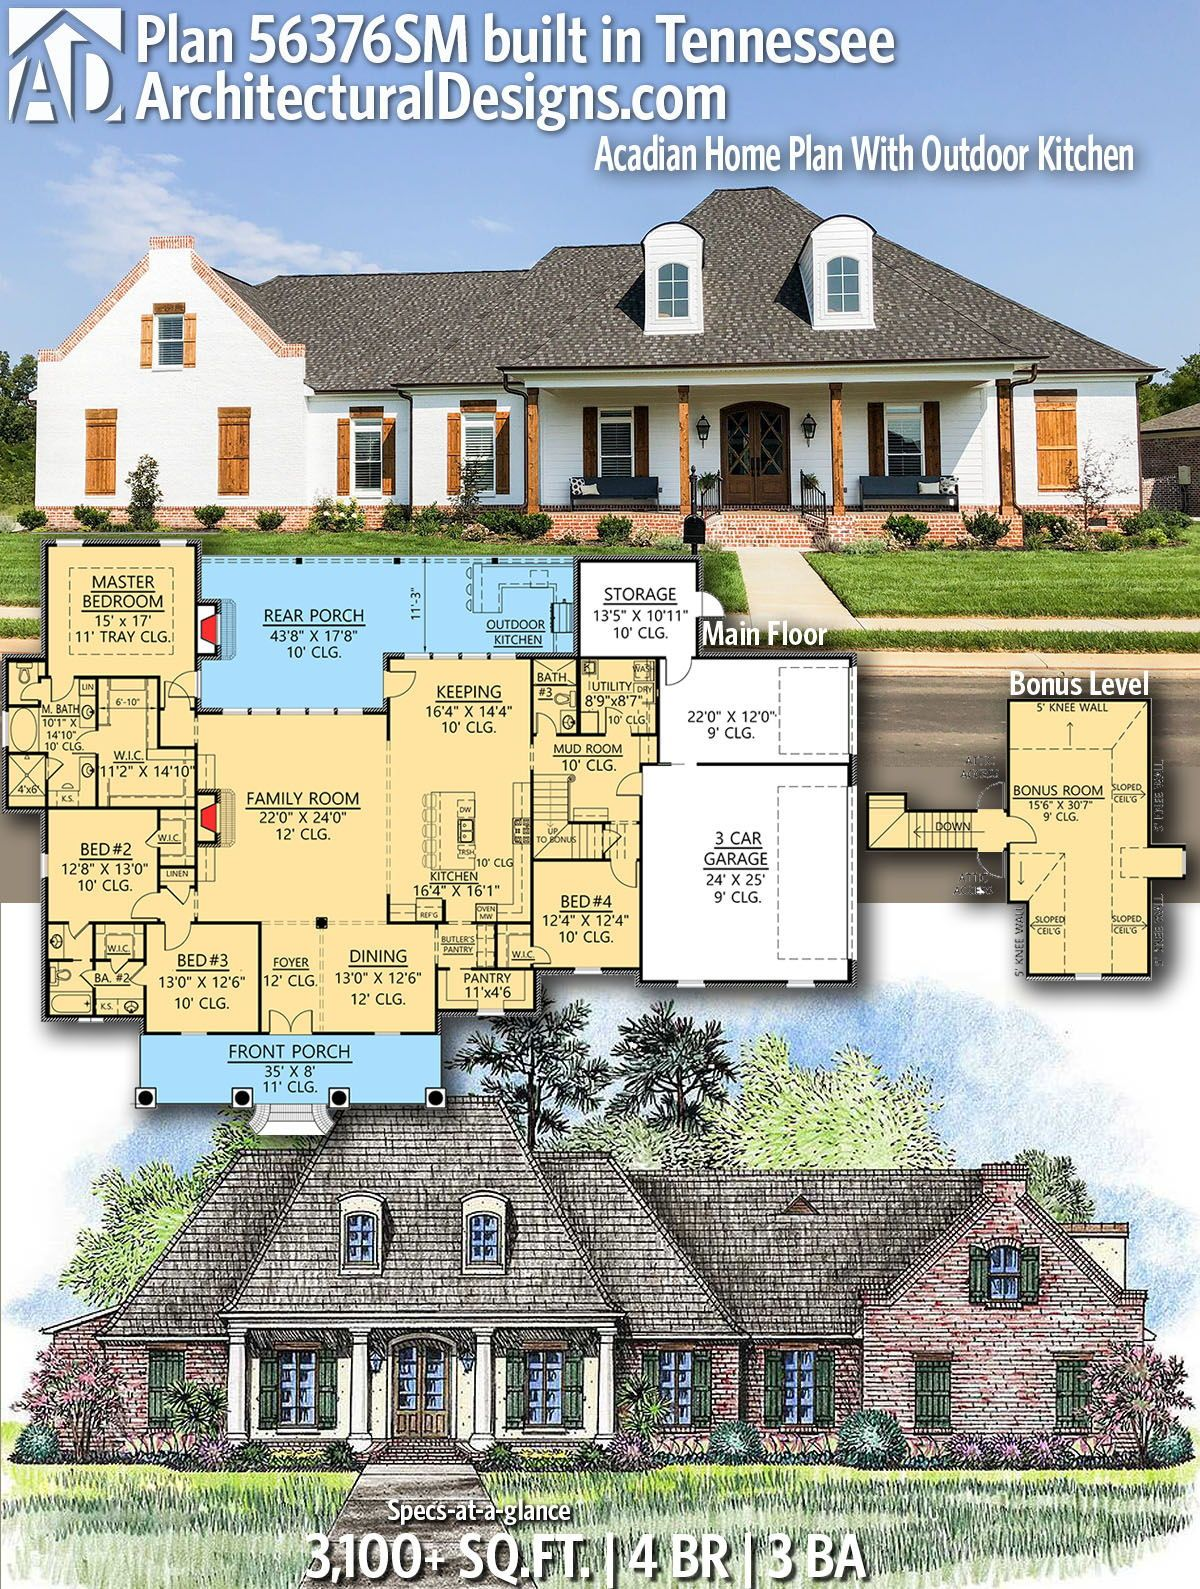 Our client in Tennessee built House Plan